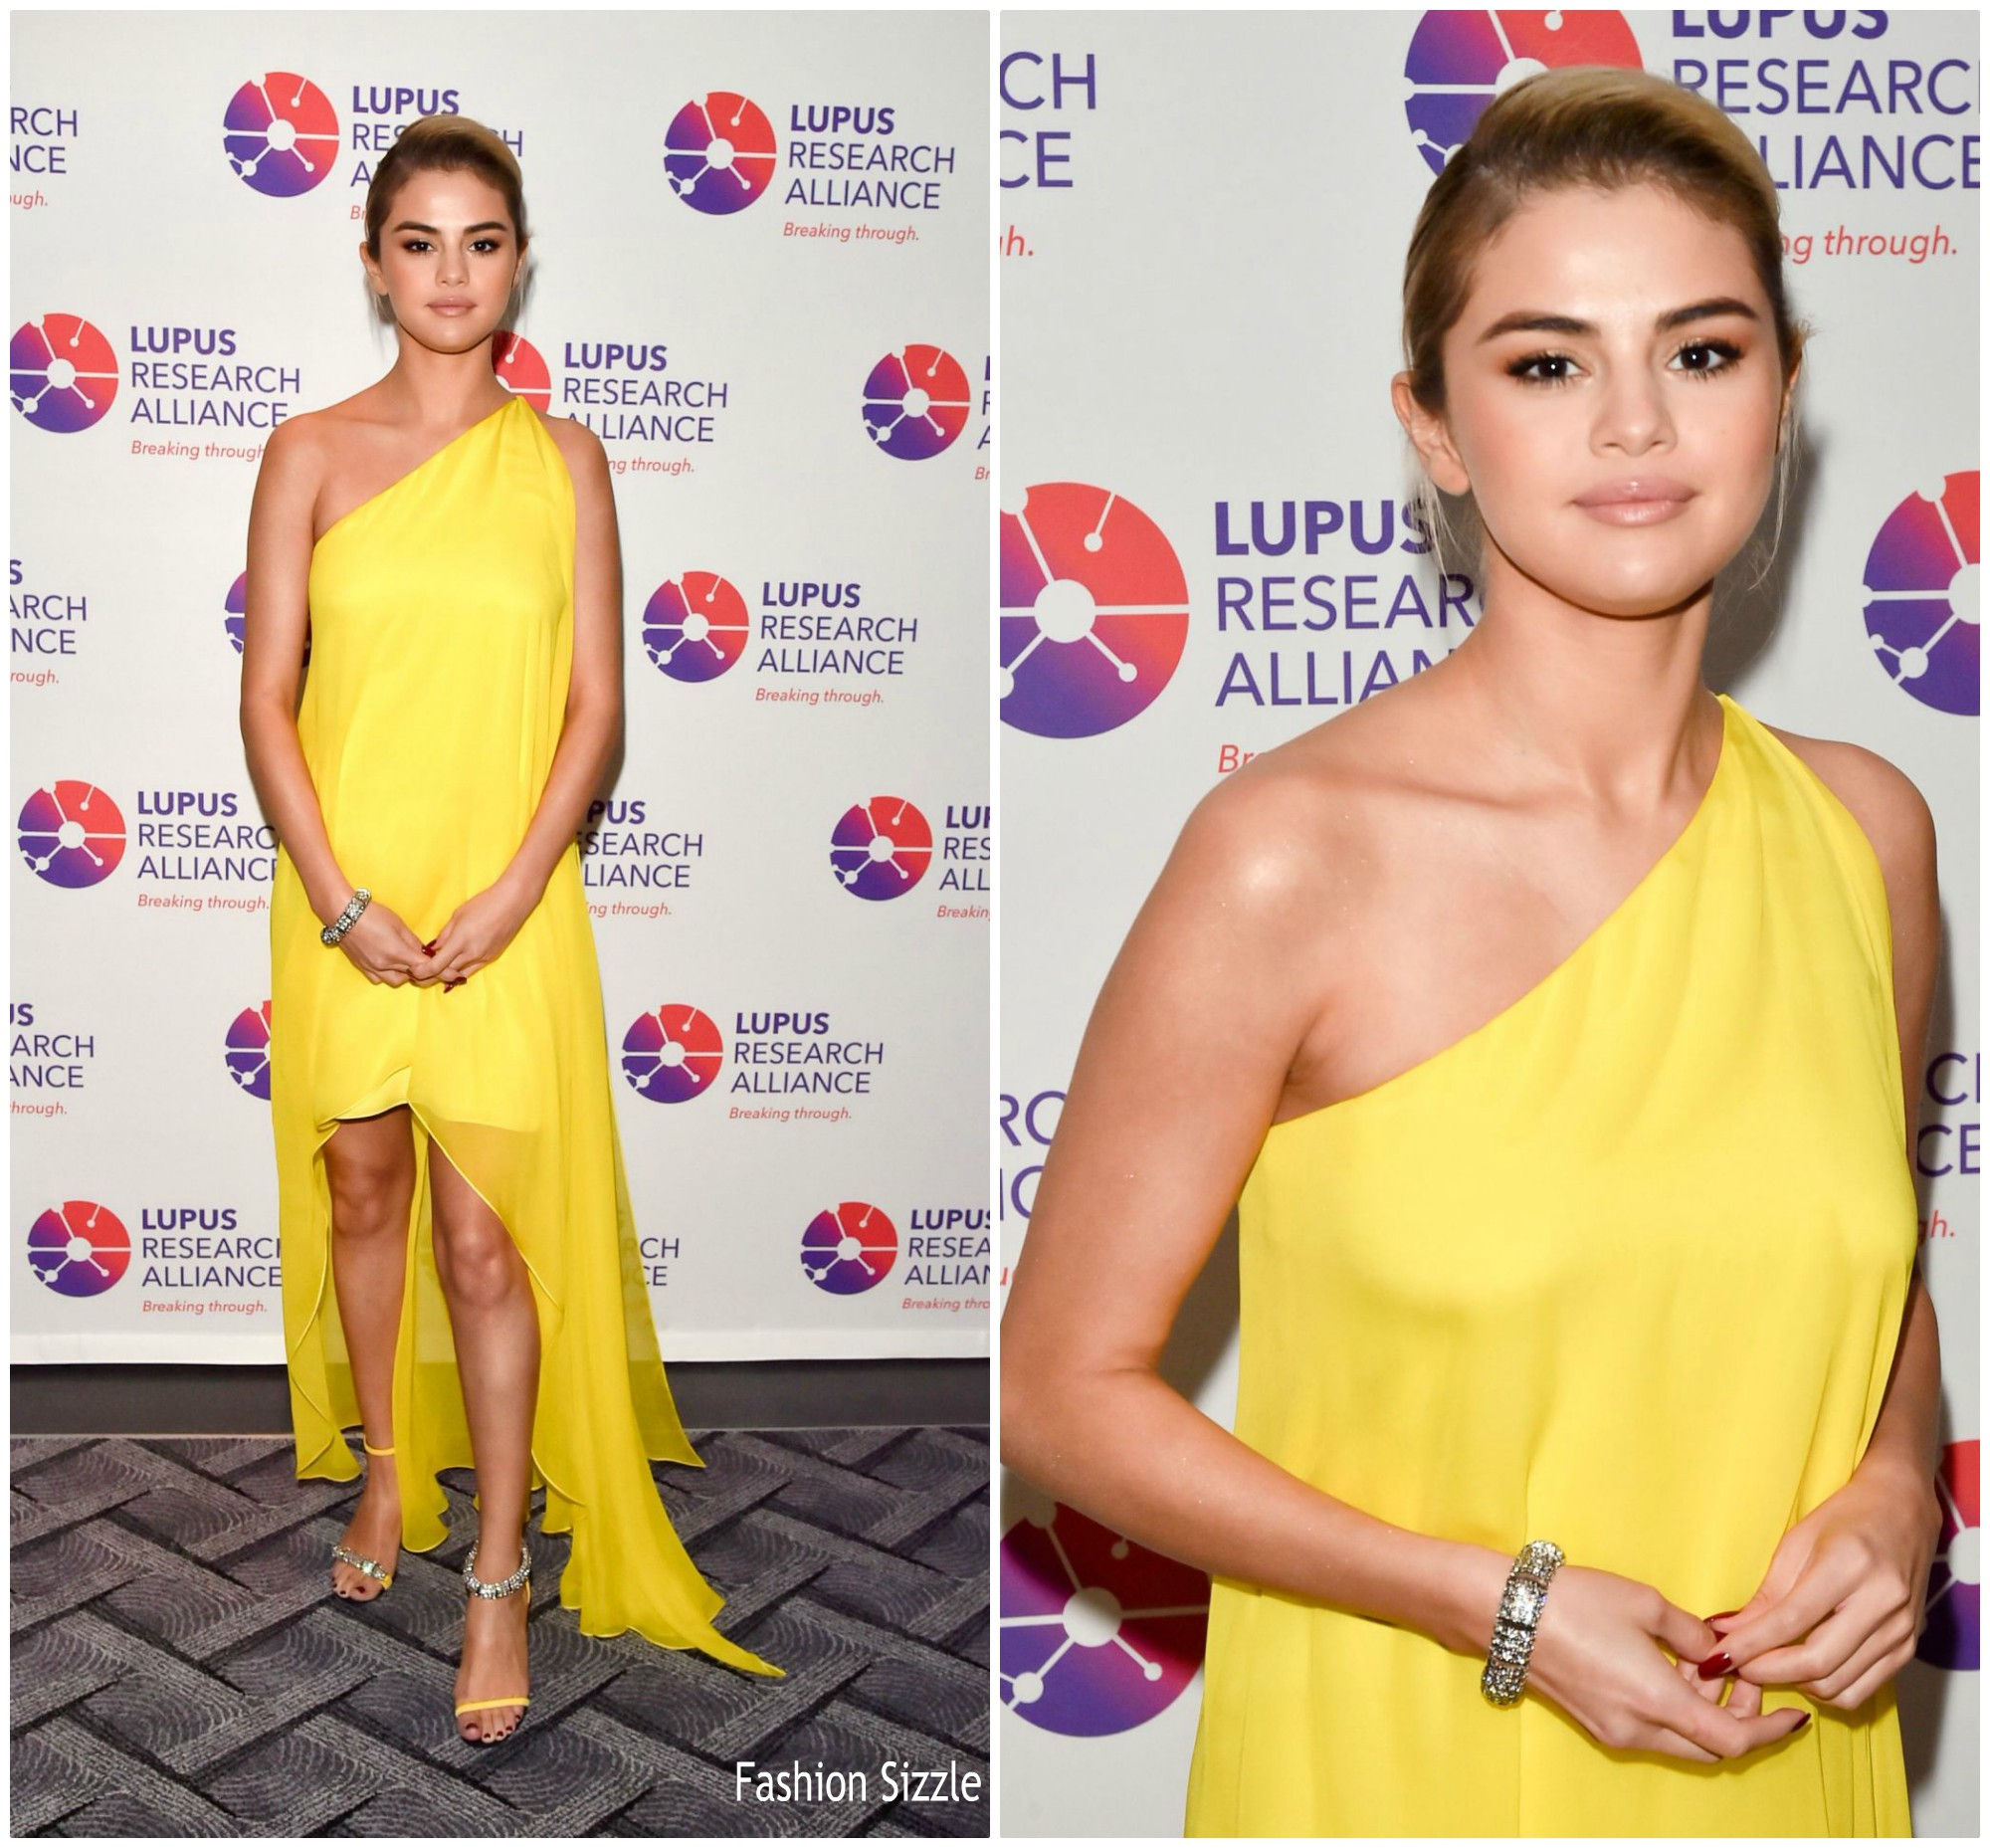 selena-gomez-in-calvin-klein-lupus-research-alliance-gala